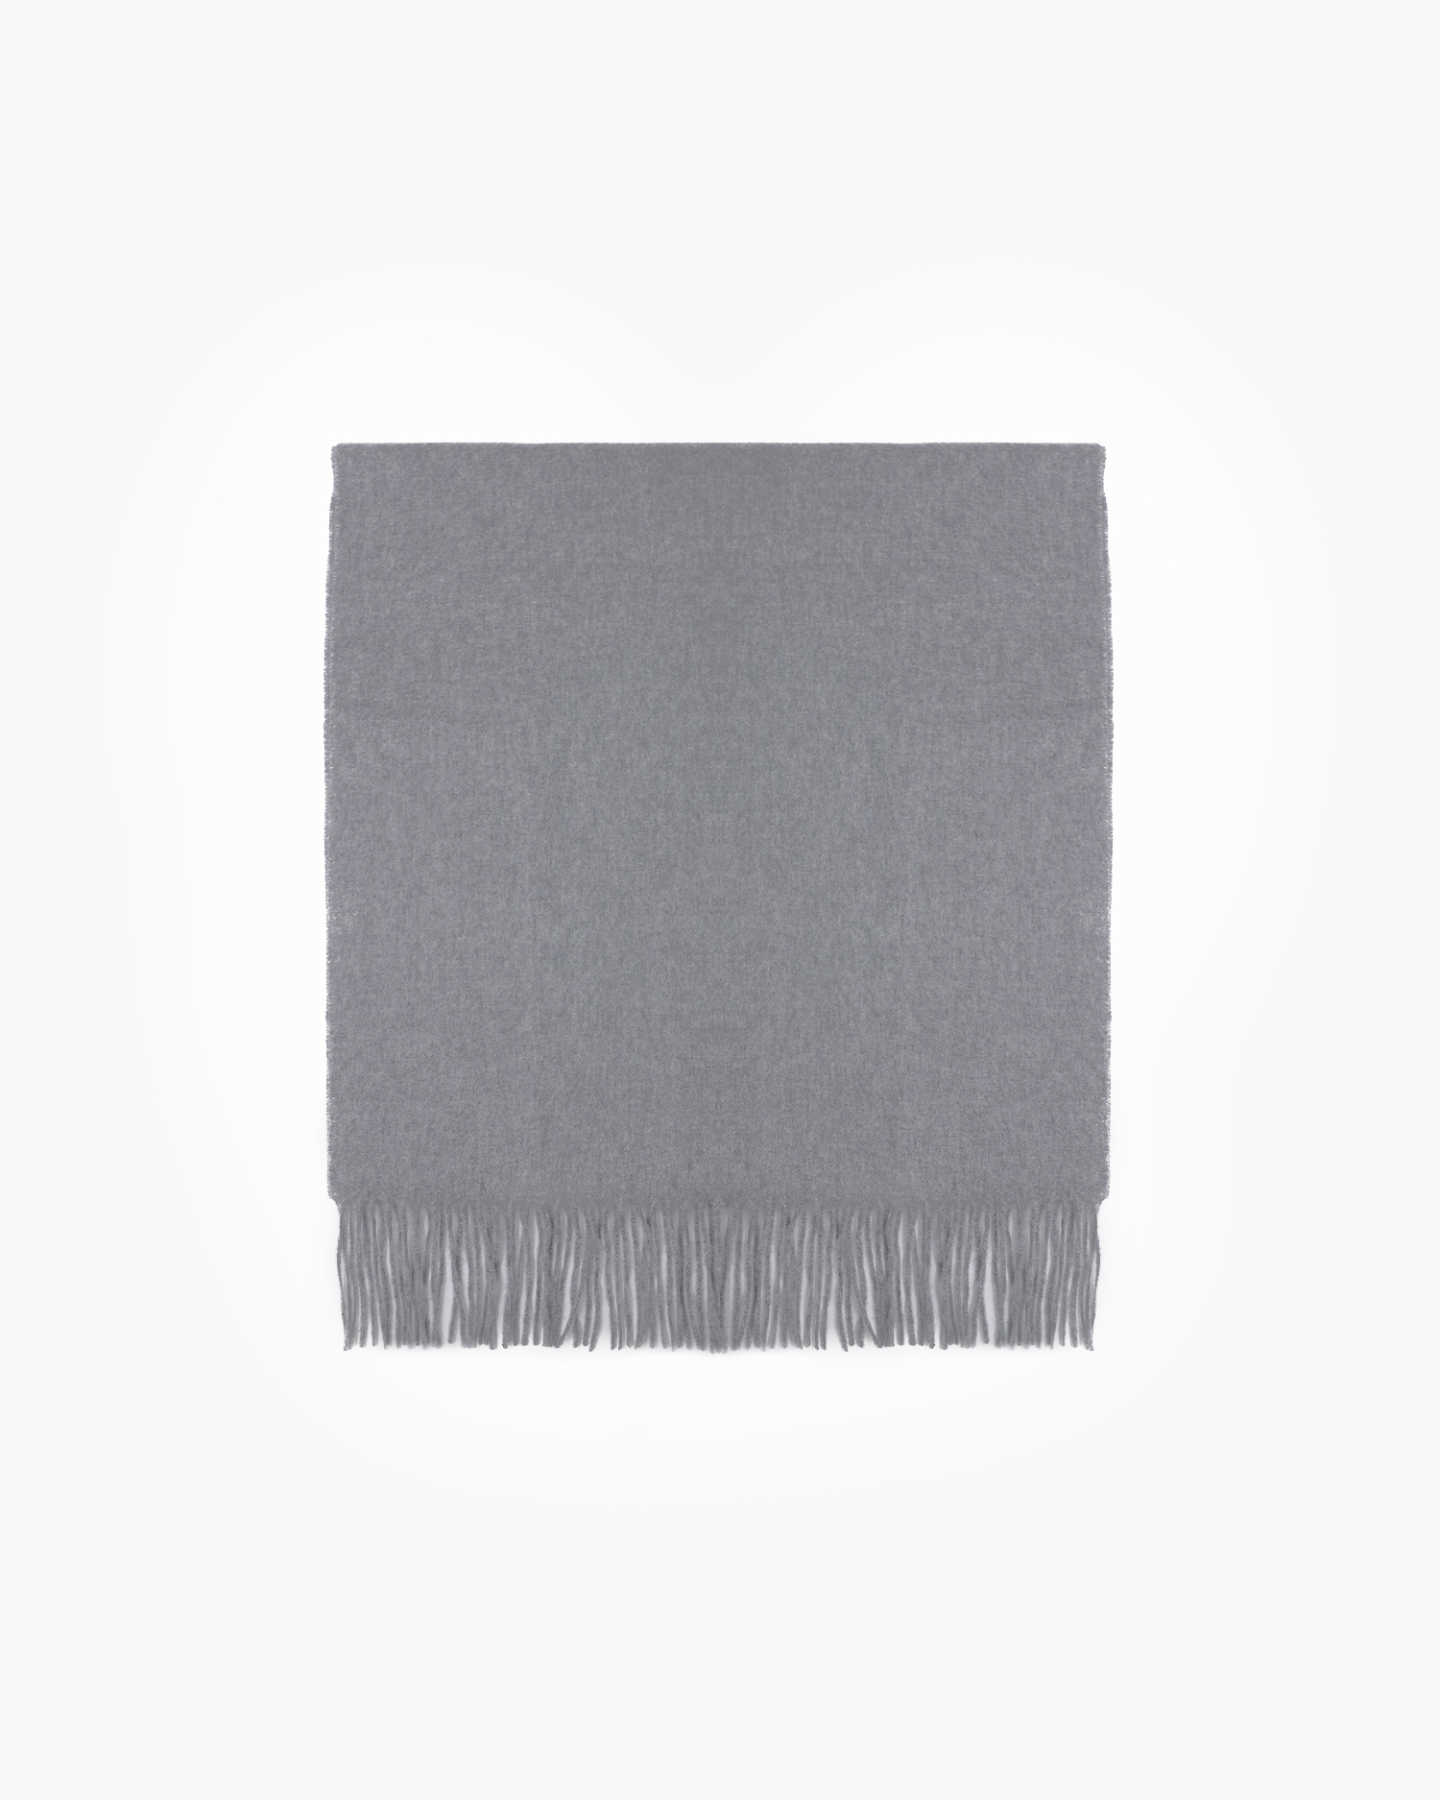 Pair With - Mongolian Cashmere Throw - Ivory